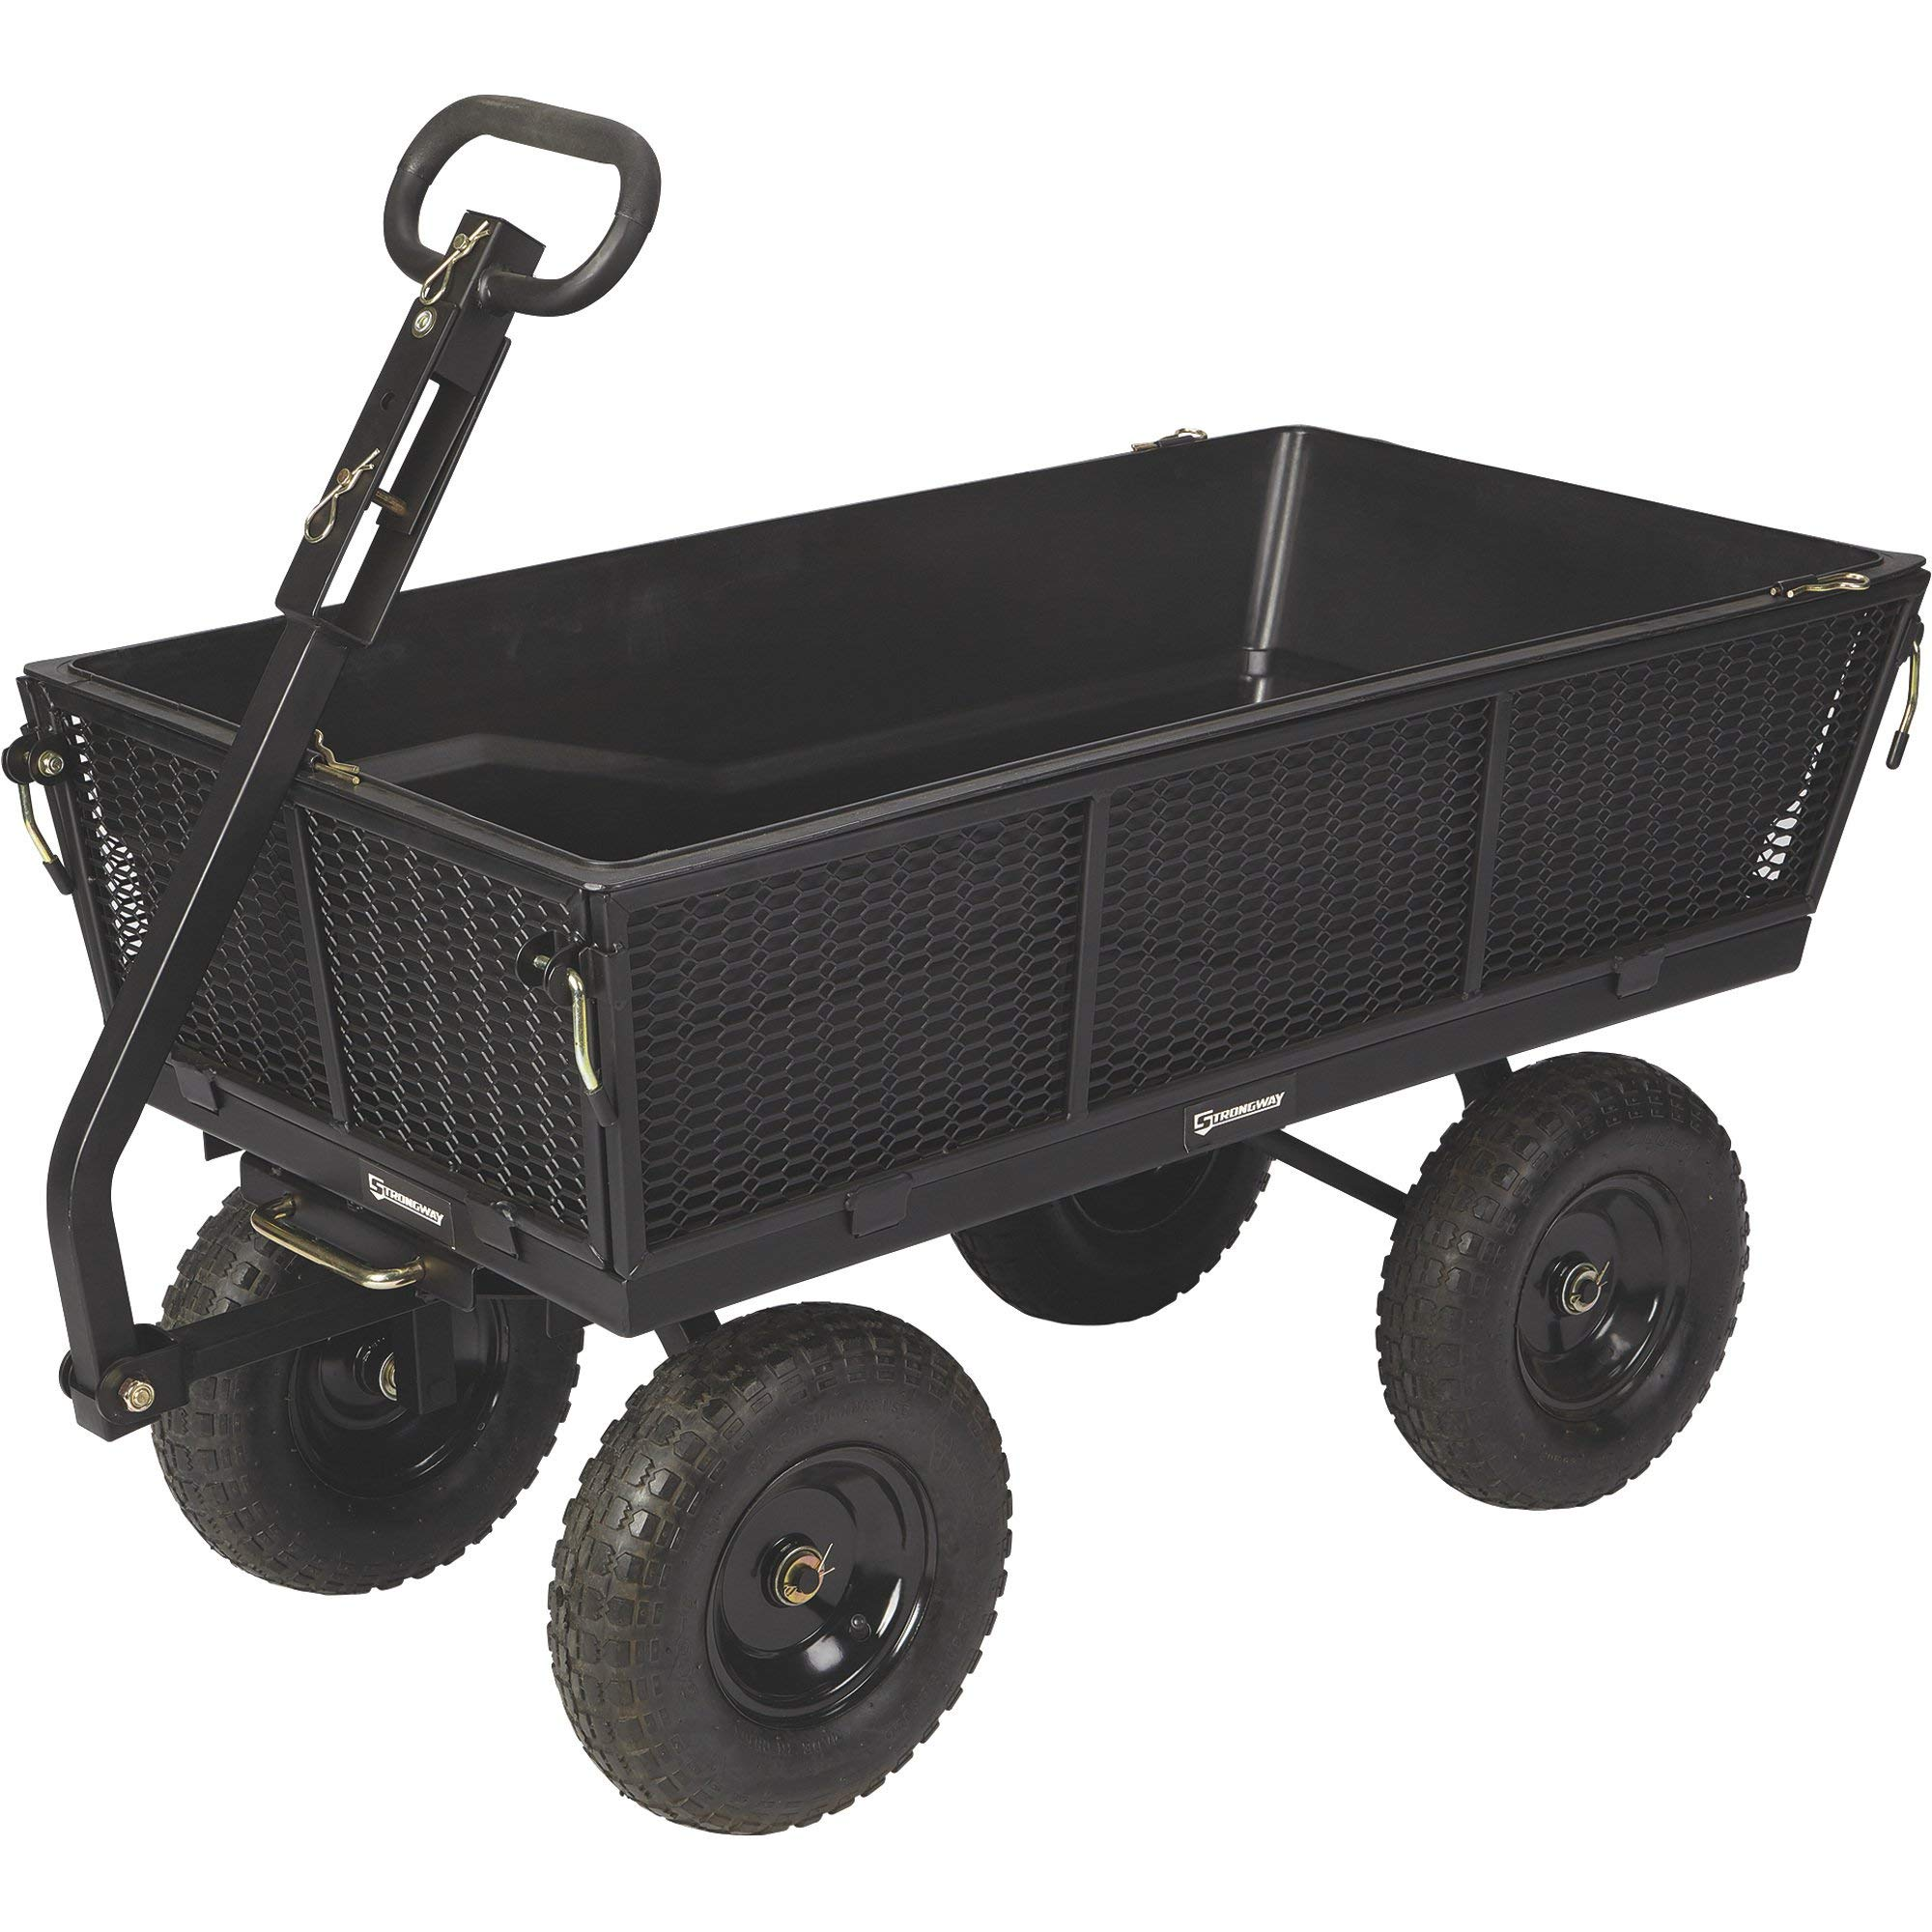 Strongway Steel Dump Cart with Removable Liner - 1200-Lb. Capacity, 50in.L x 24in.W Overall Size